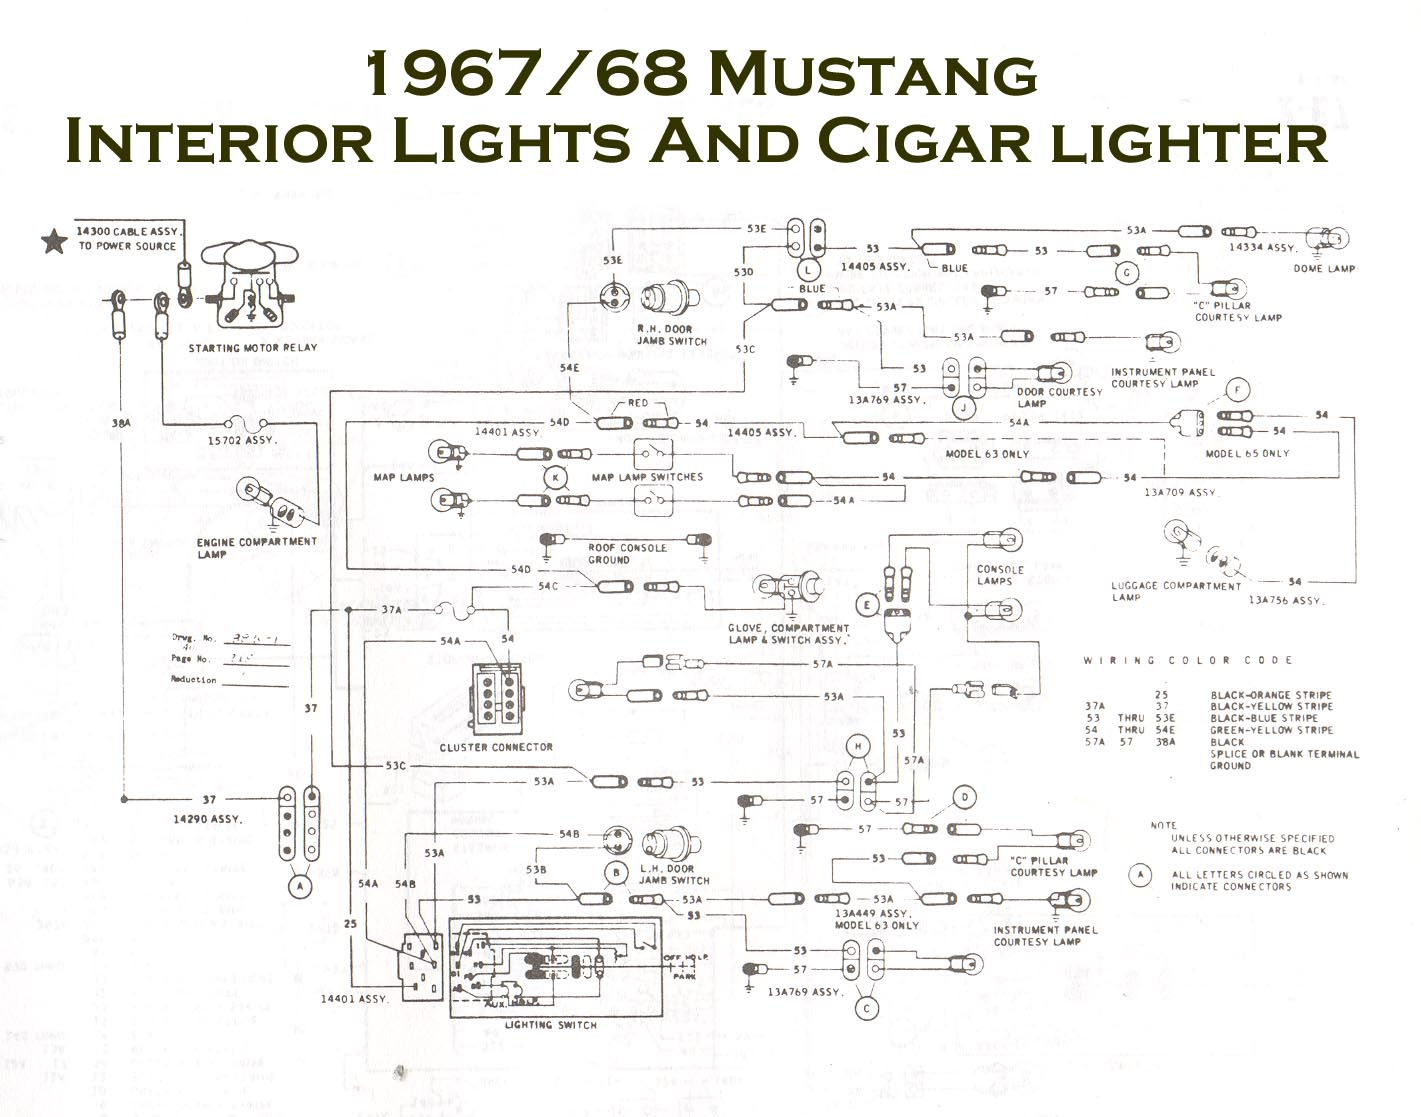 vintage mustang wiring diagrams rh midlife66 com 1967 mustang alternator wiring diagram engine wiring diagram 1967 mustang v8